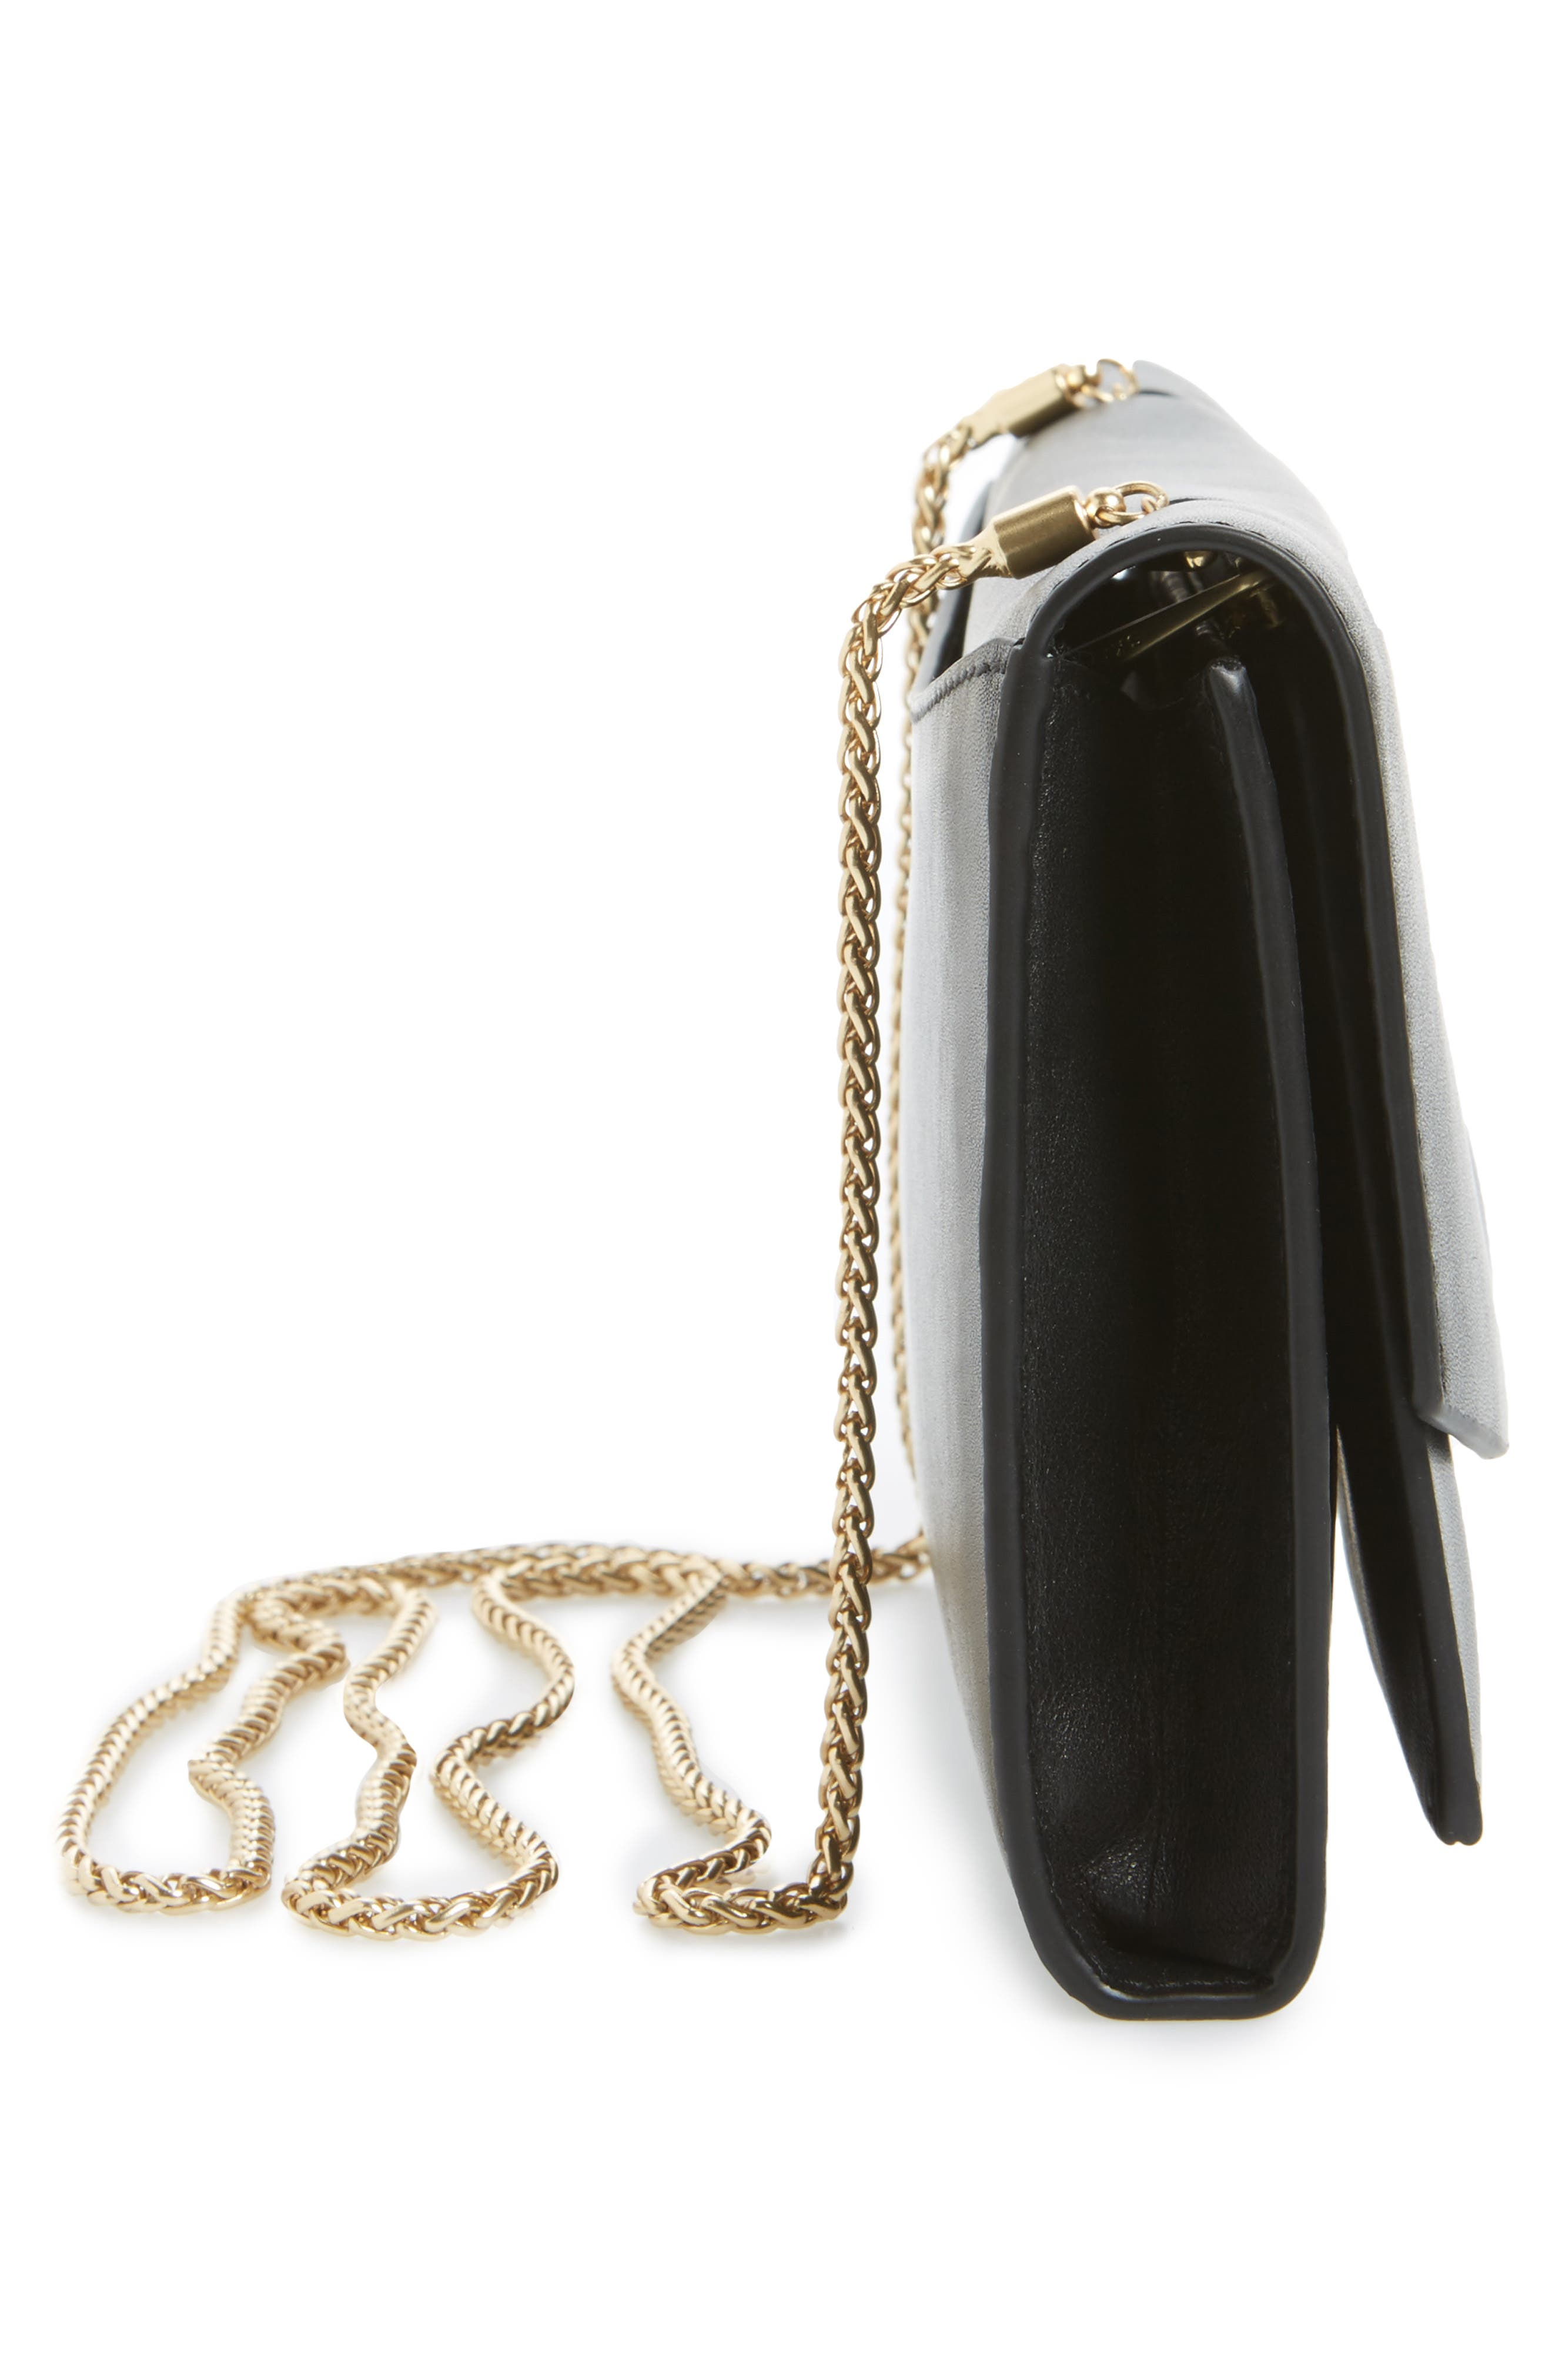 Eryka Leather Envelope Clutch with Detachable Chain,                             Alternate thumbnail 5, color,                             001